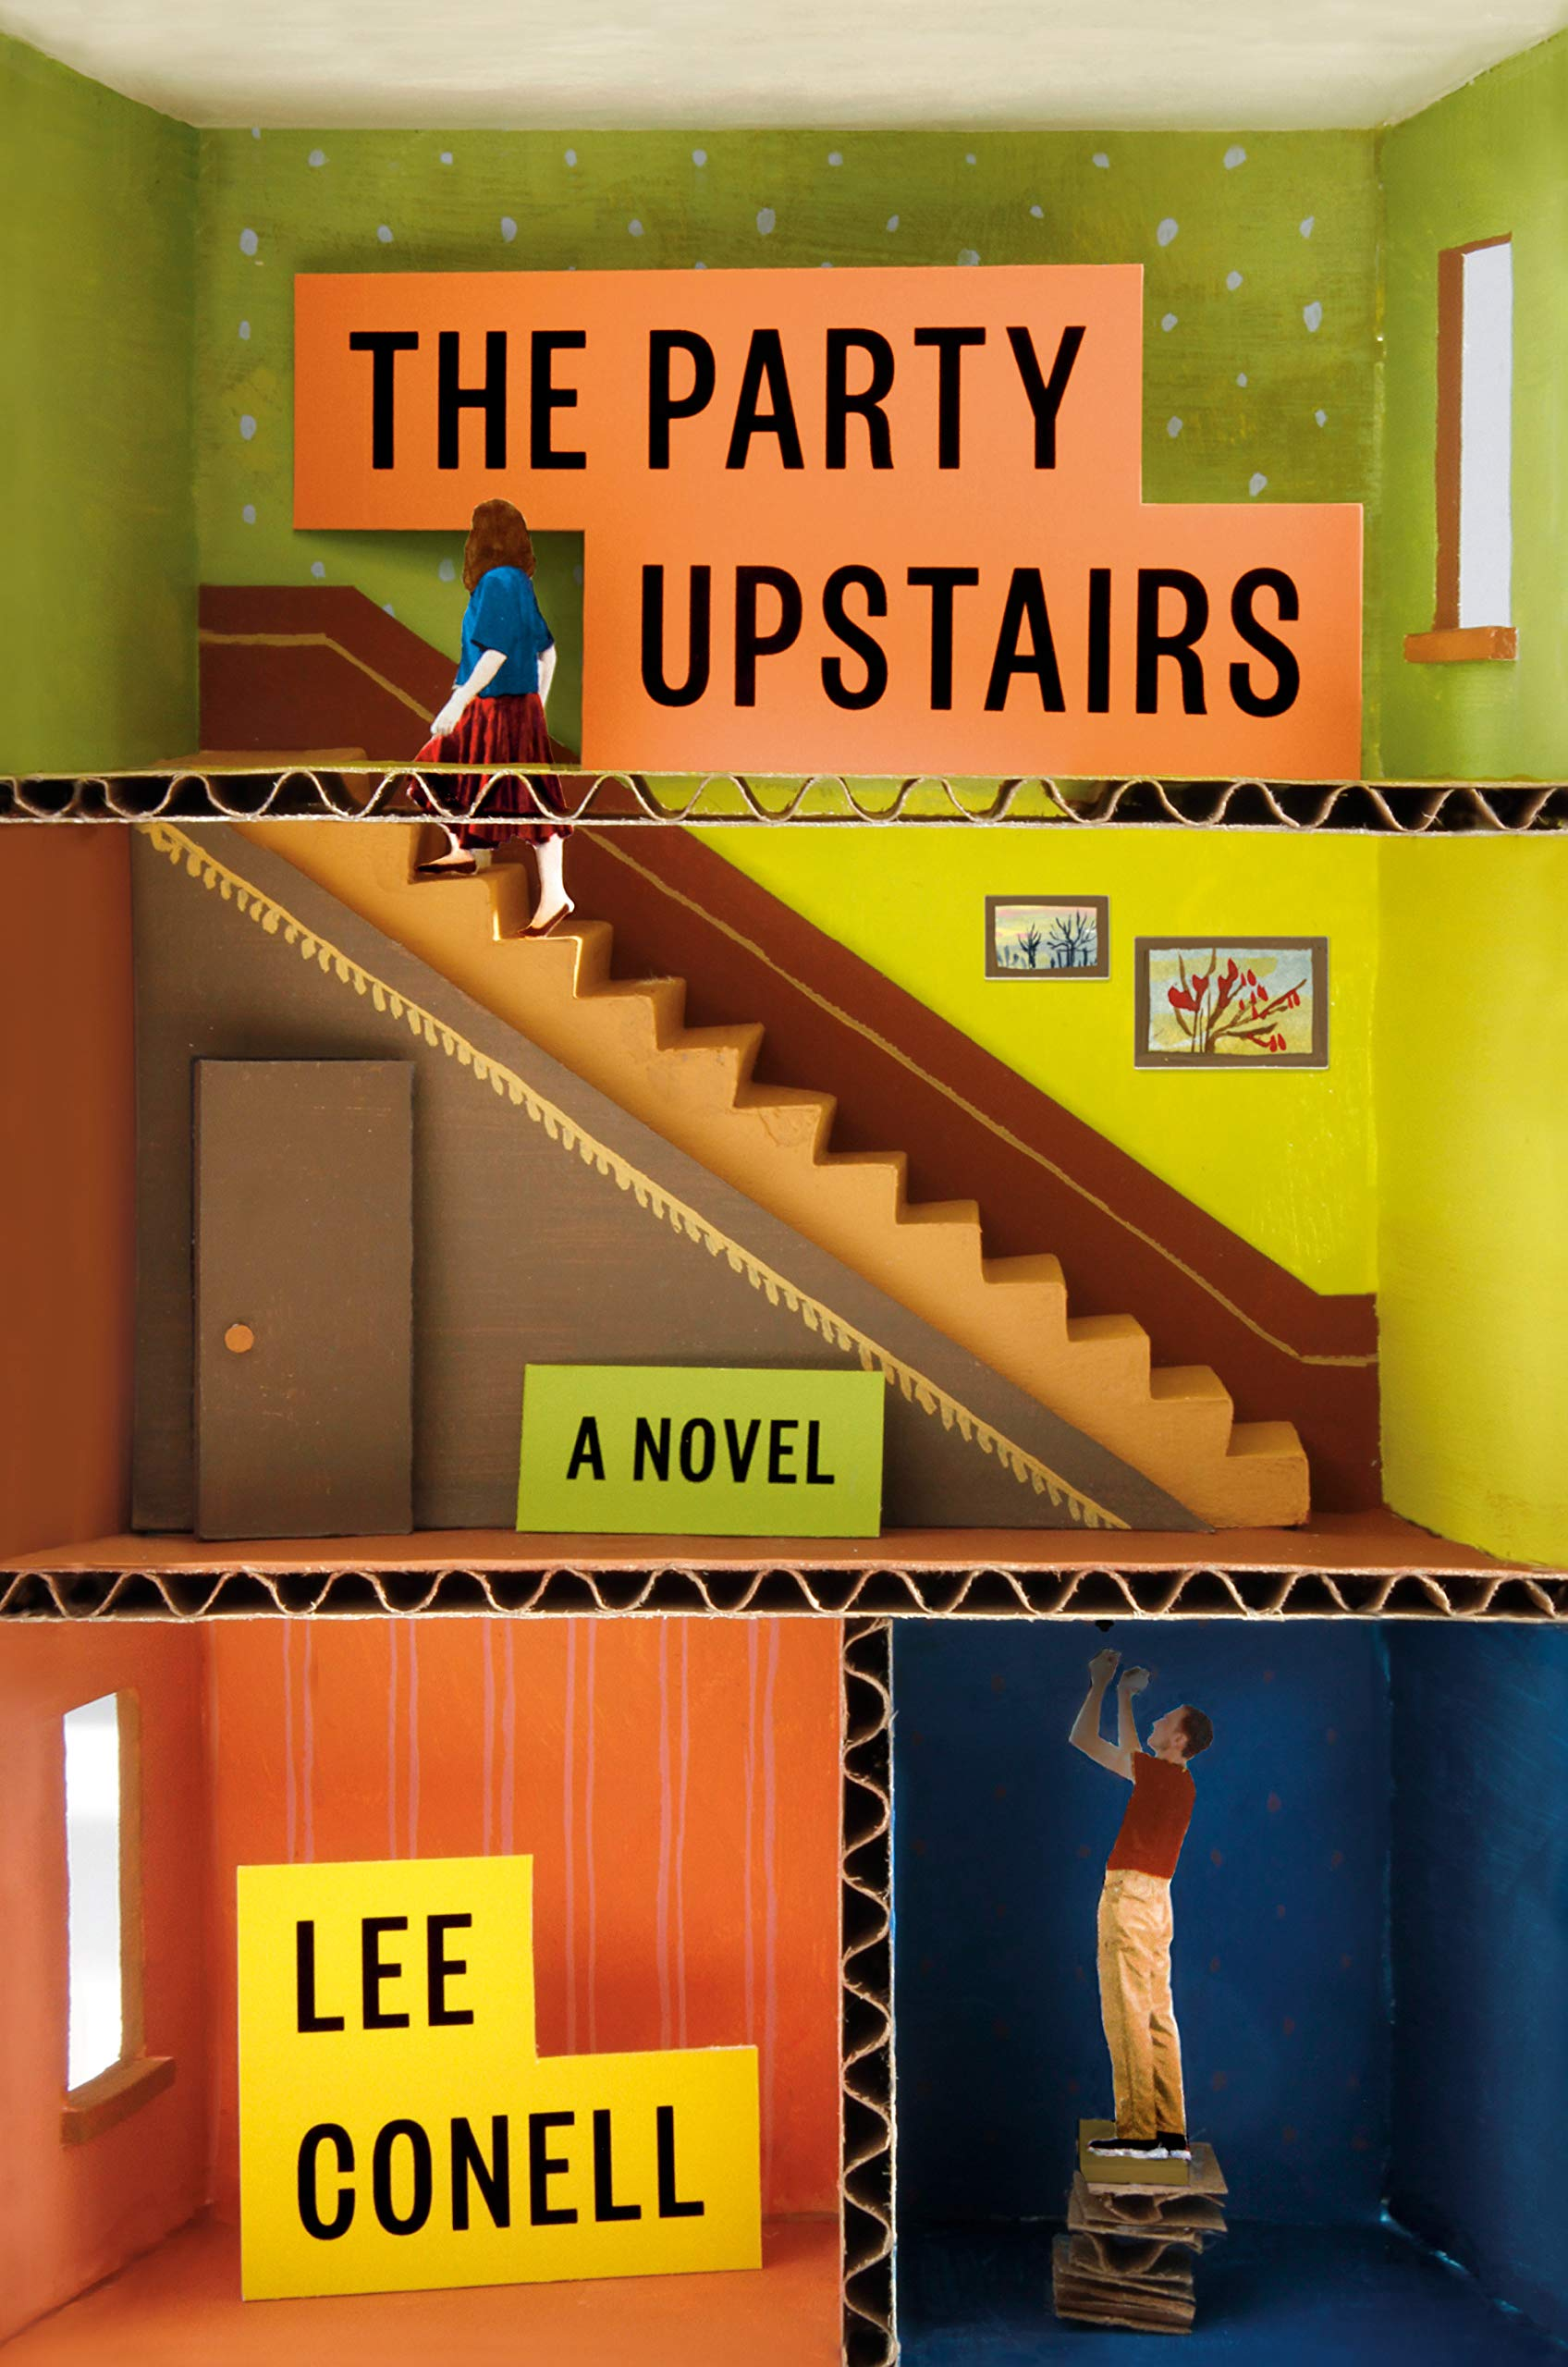 Lee Connell, The Party Upstairs